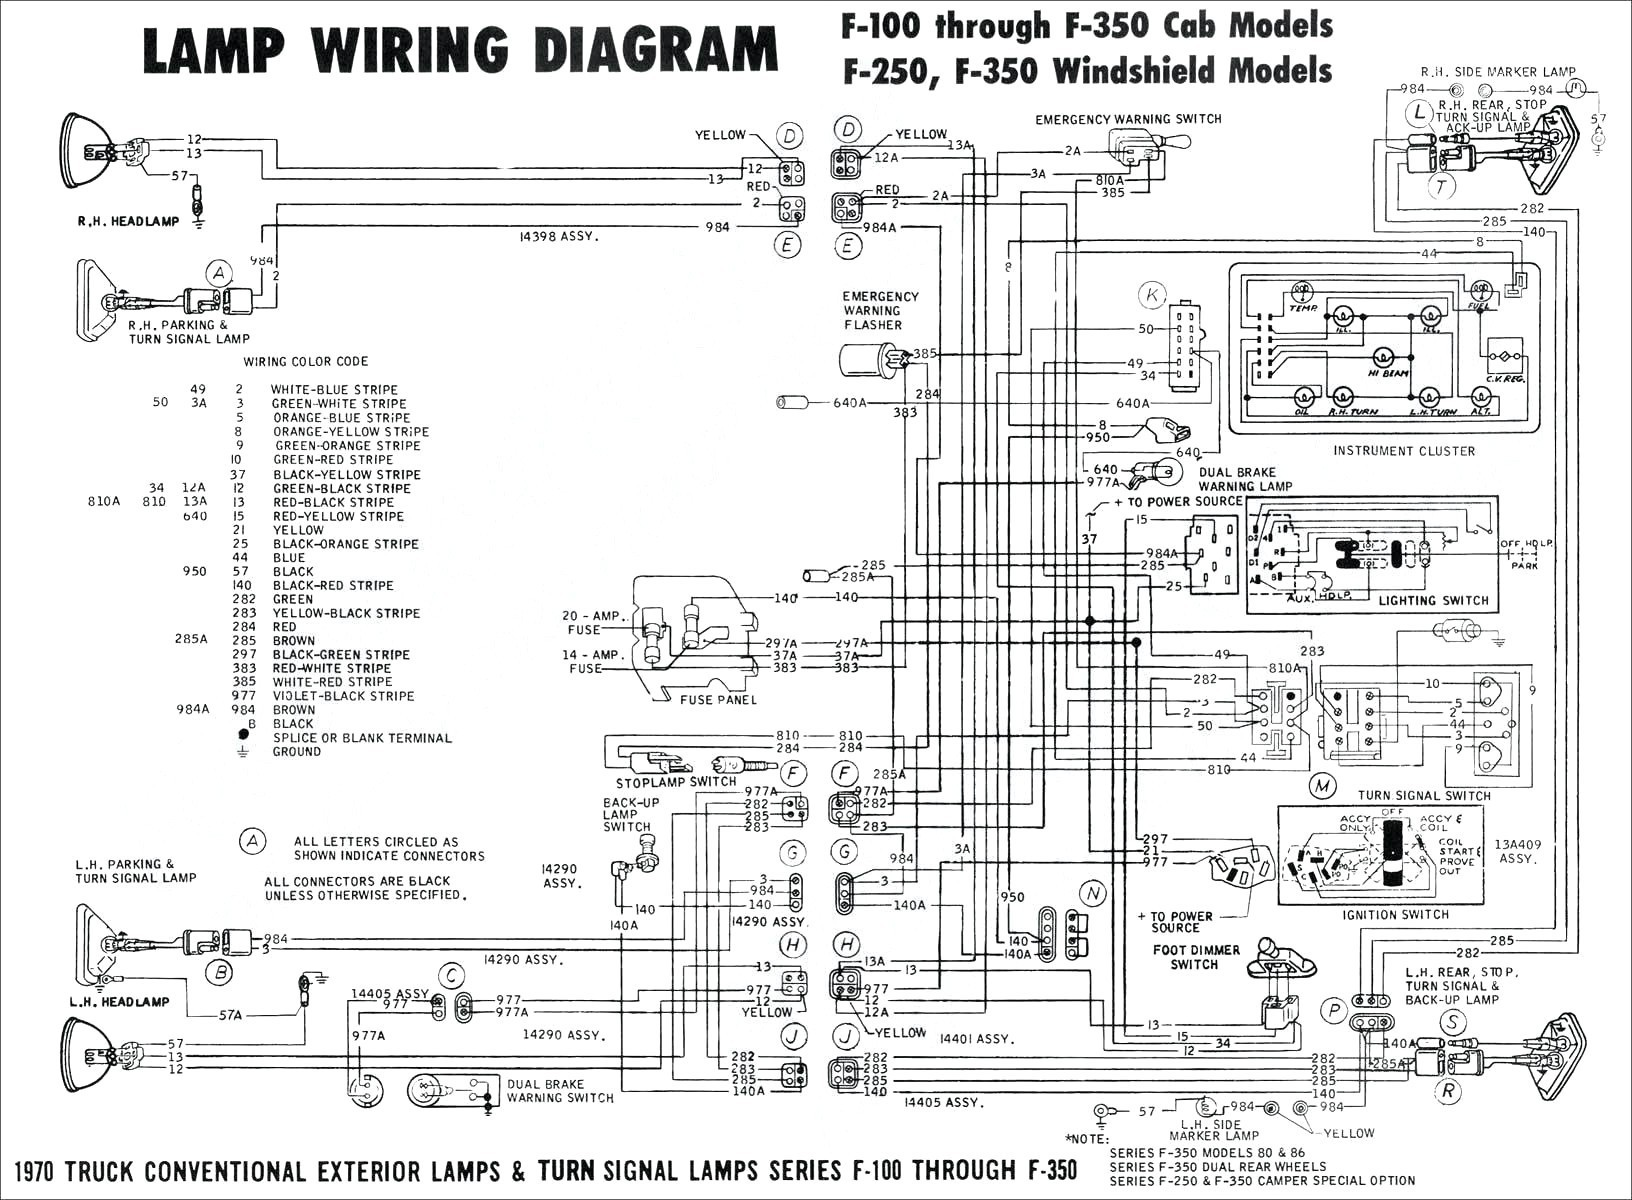 1999 Dodge Ram Fuse Box Trusted Wiring Diagram For Lincoln Town Car 3500 Schematic Diagrams Hood 1997